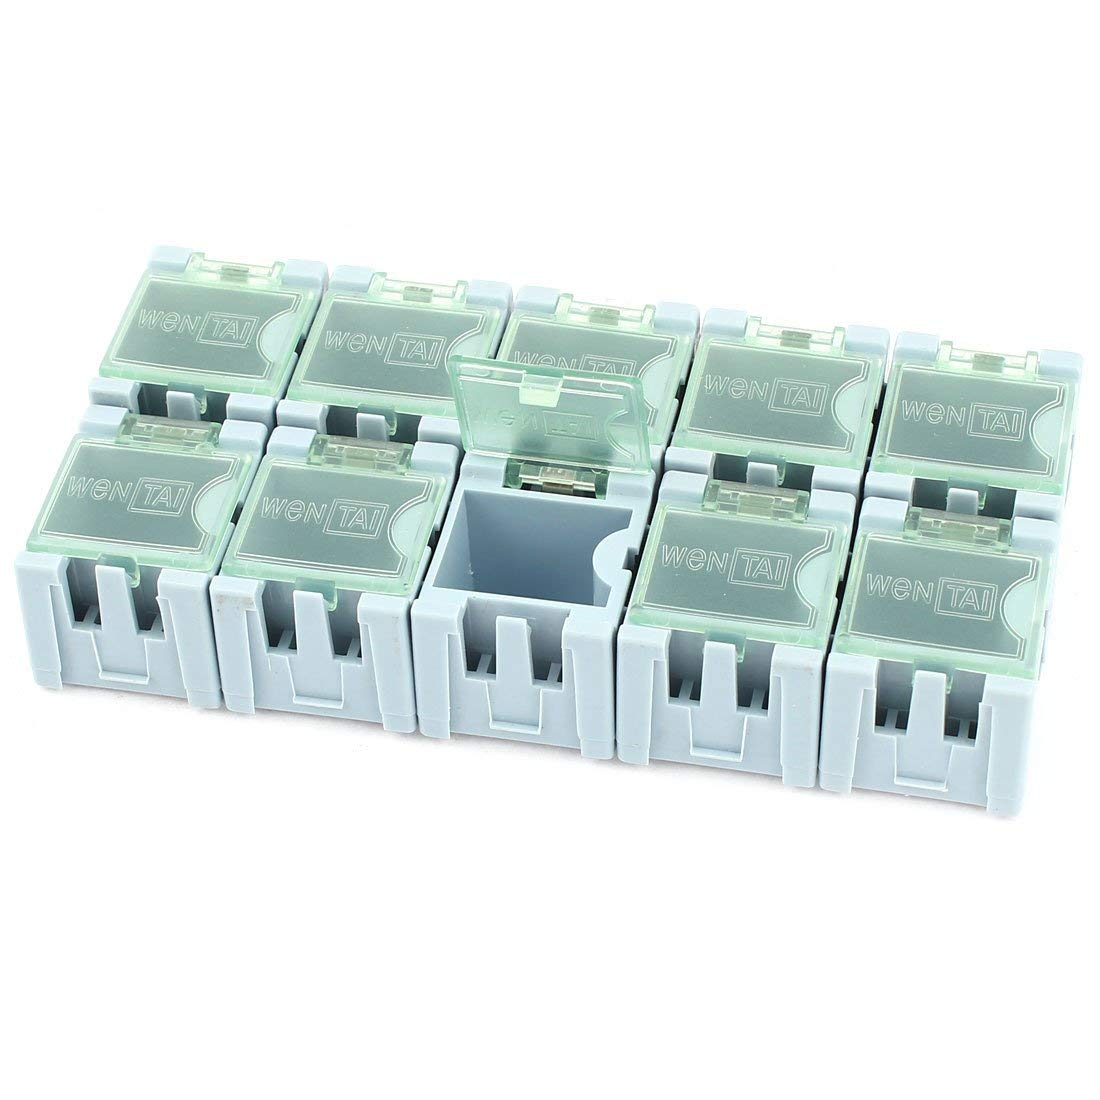 Aexit 10 Pcs Tools & Equipment Plastic SMT SMD Electronic Components Storage Tool Boxes Box Organizer